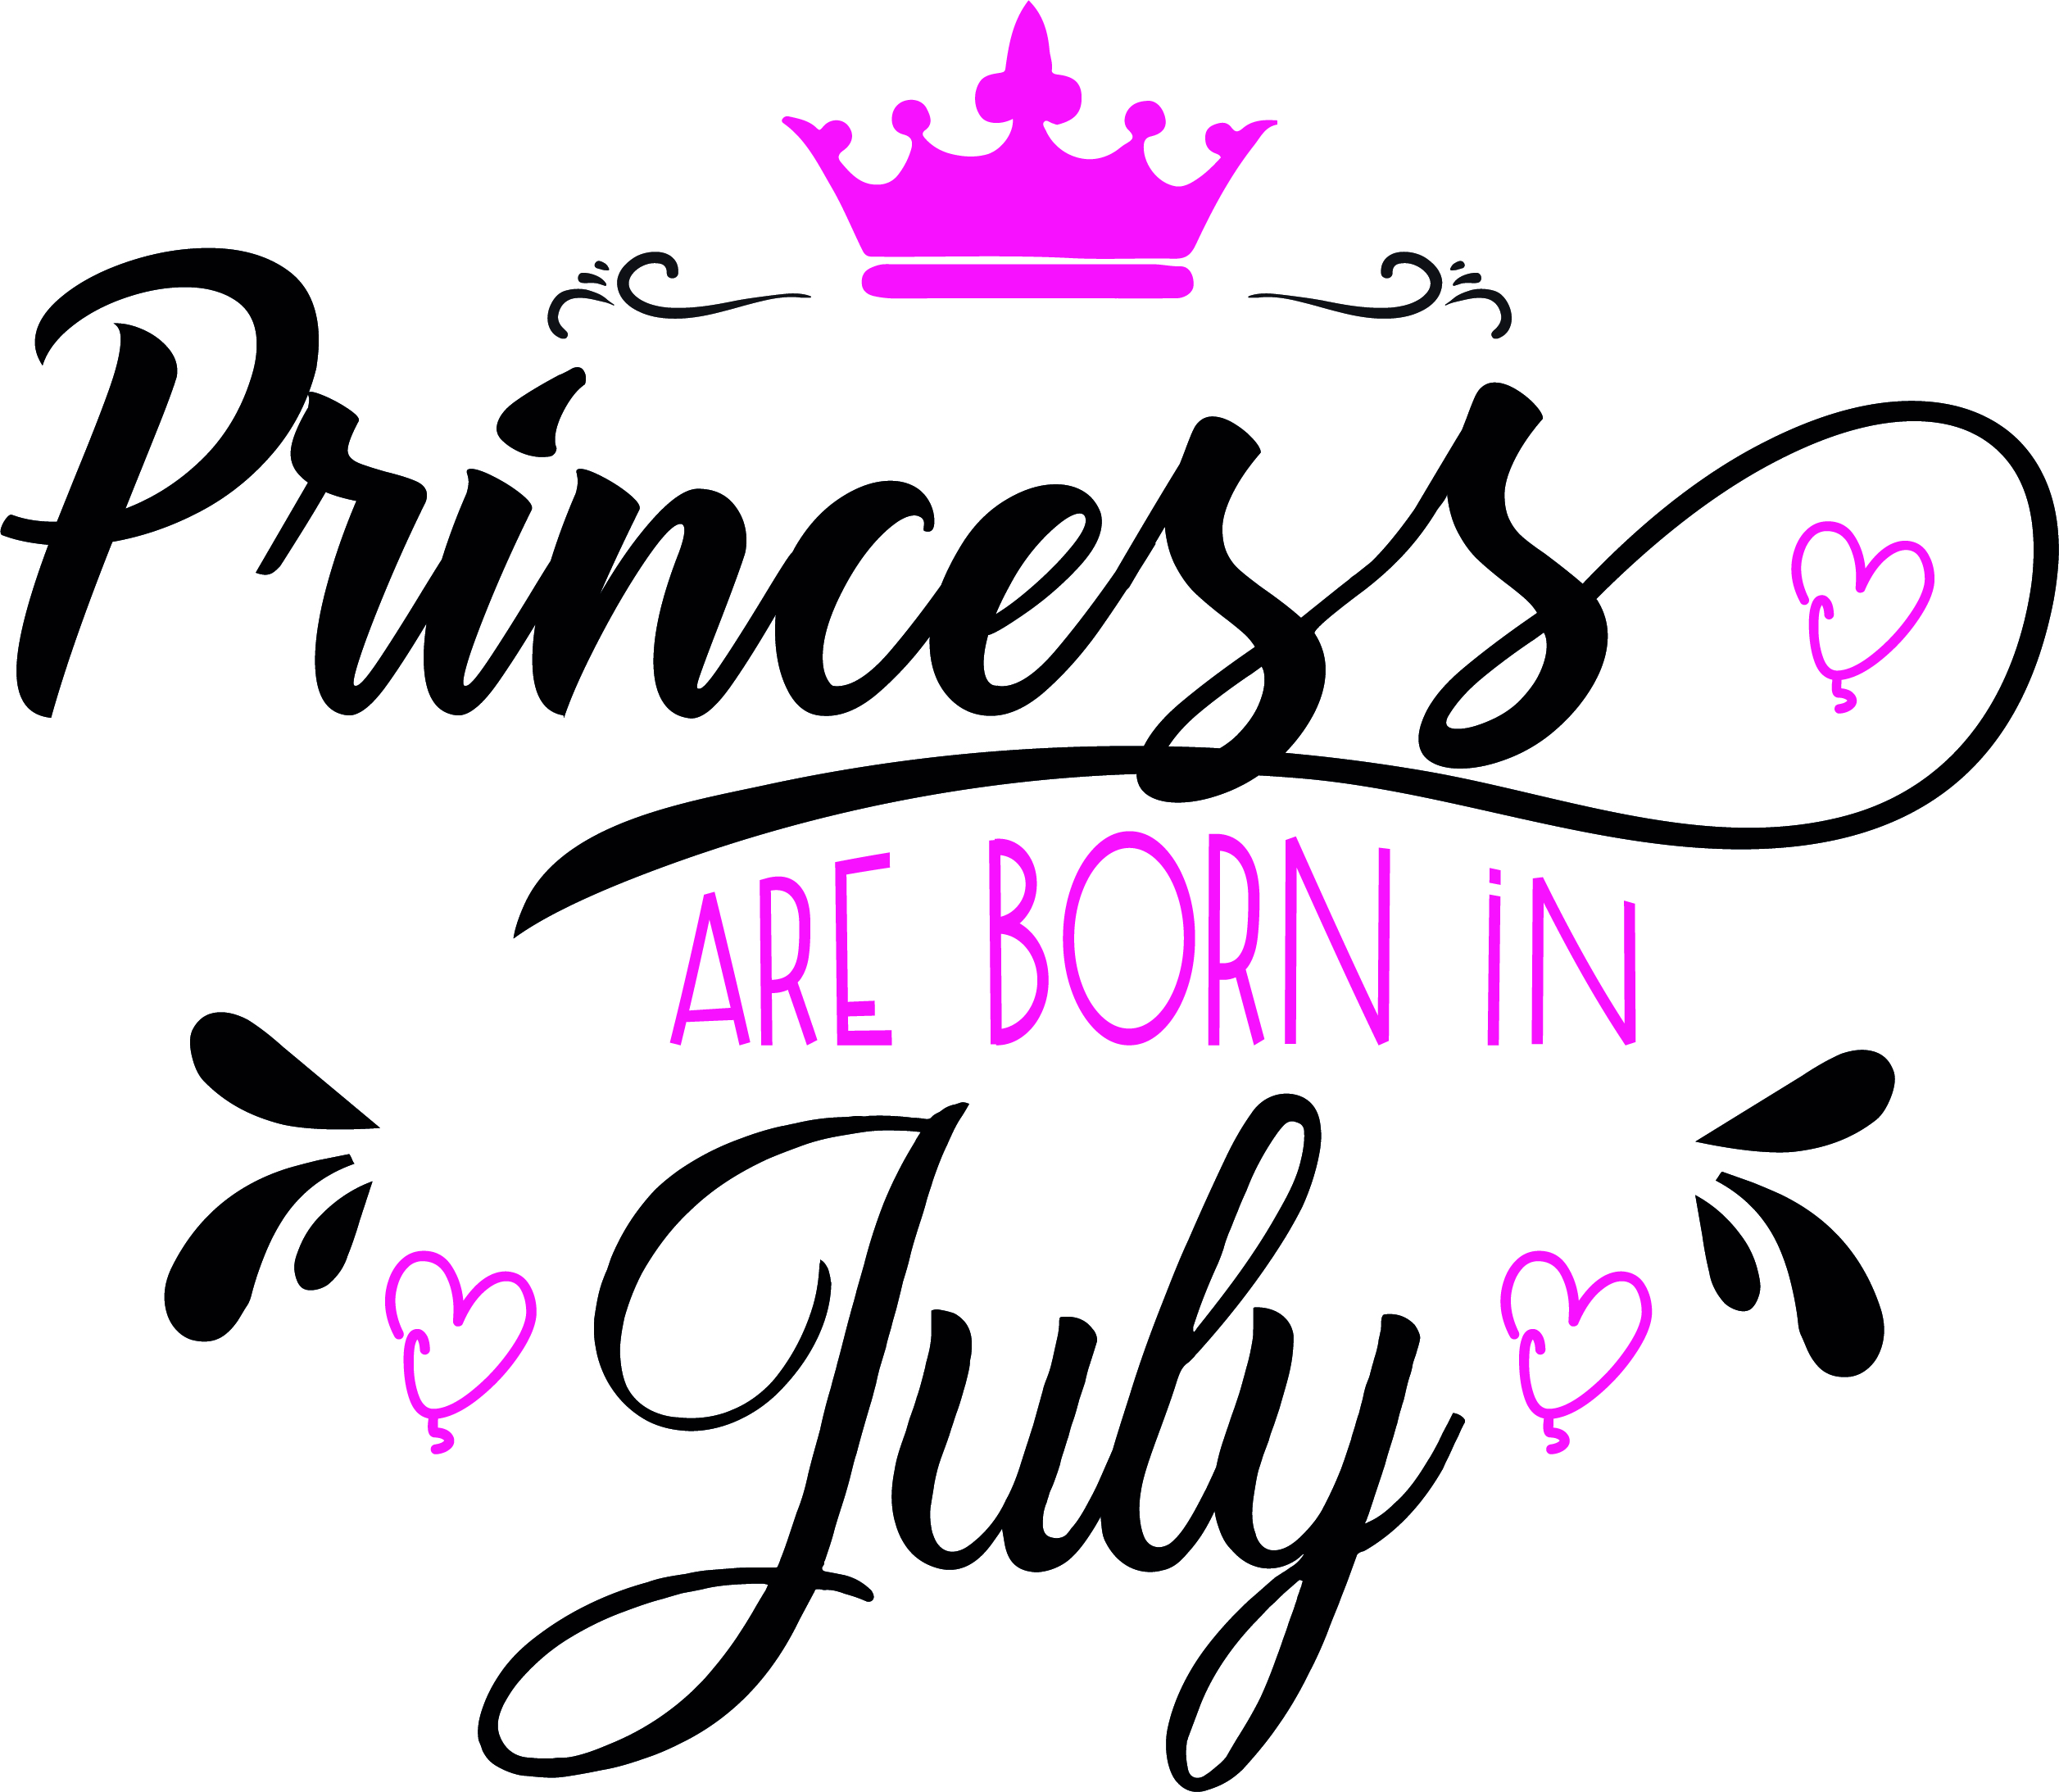 Princess are born in July Svg,Dxf,Png,Jpg,Eps vector file example image 2